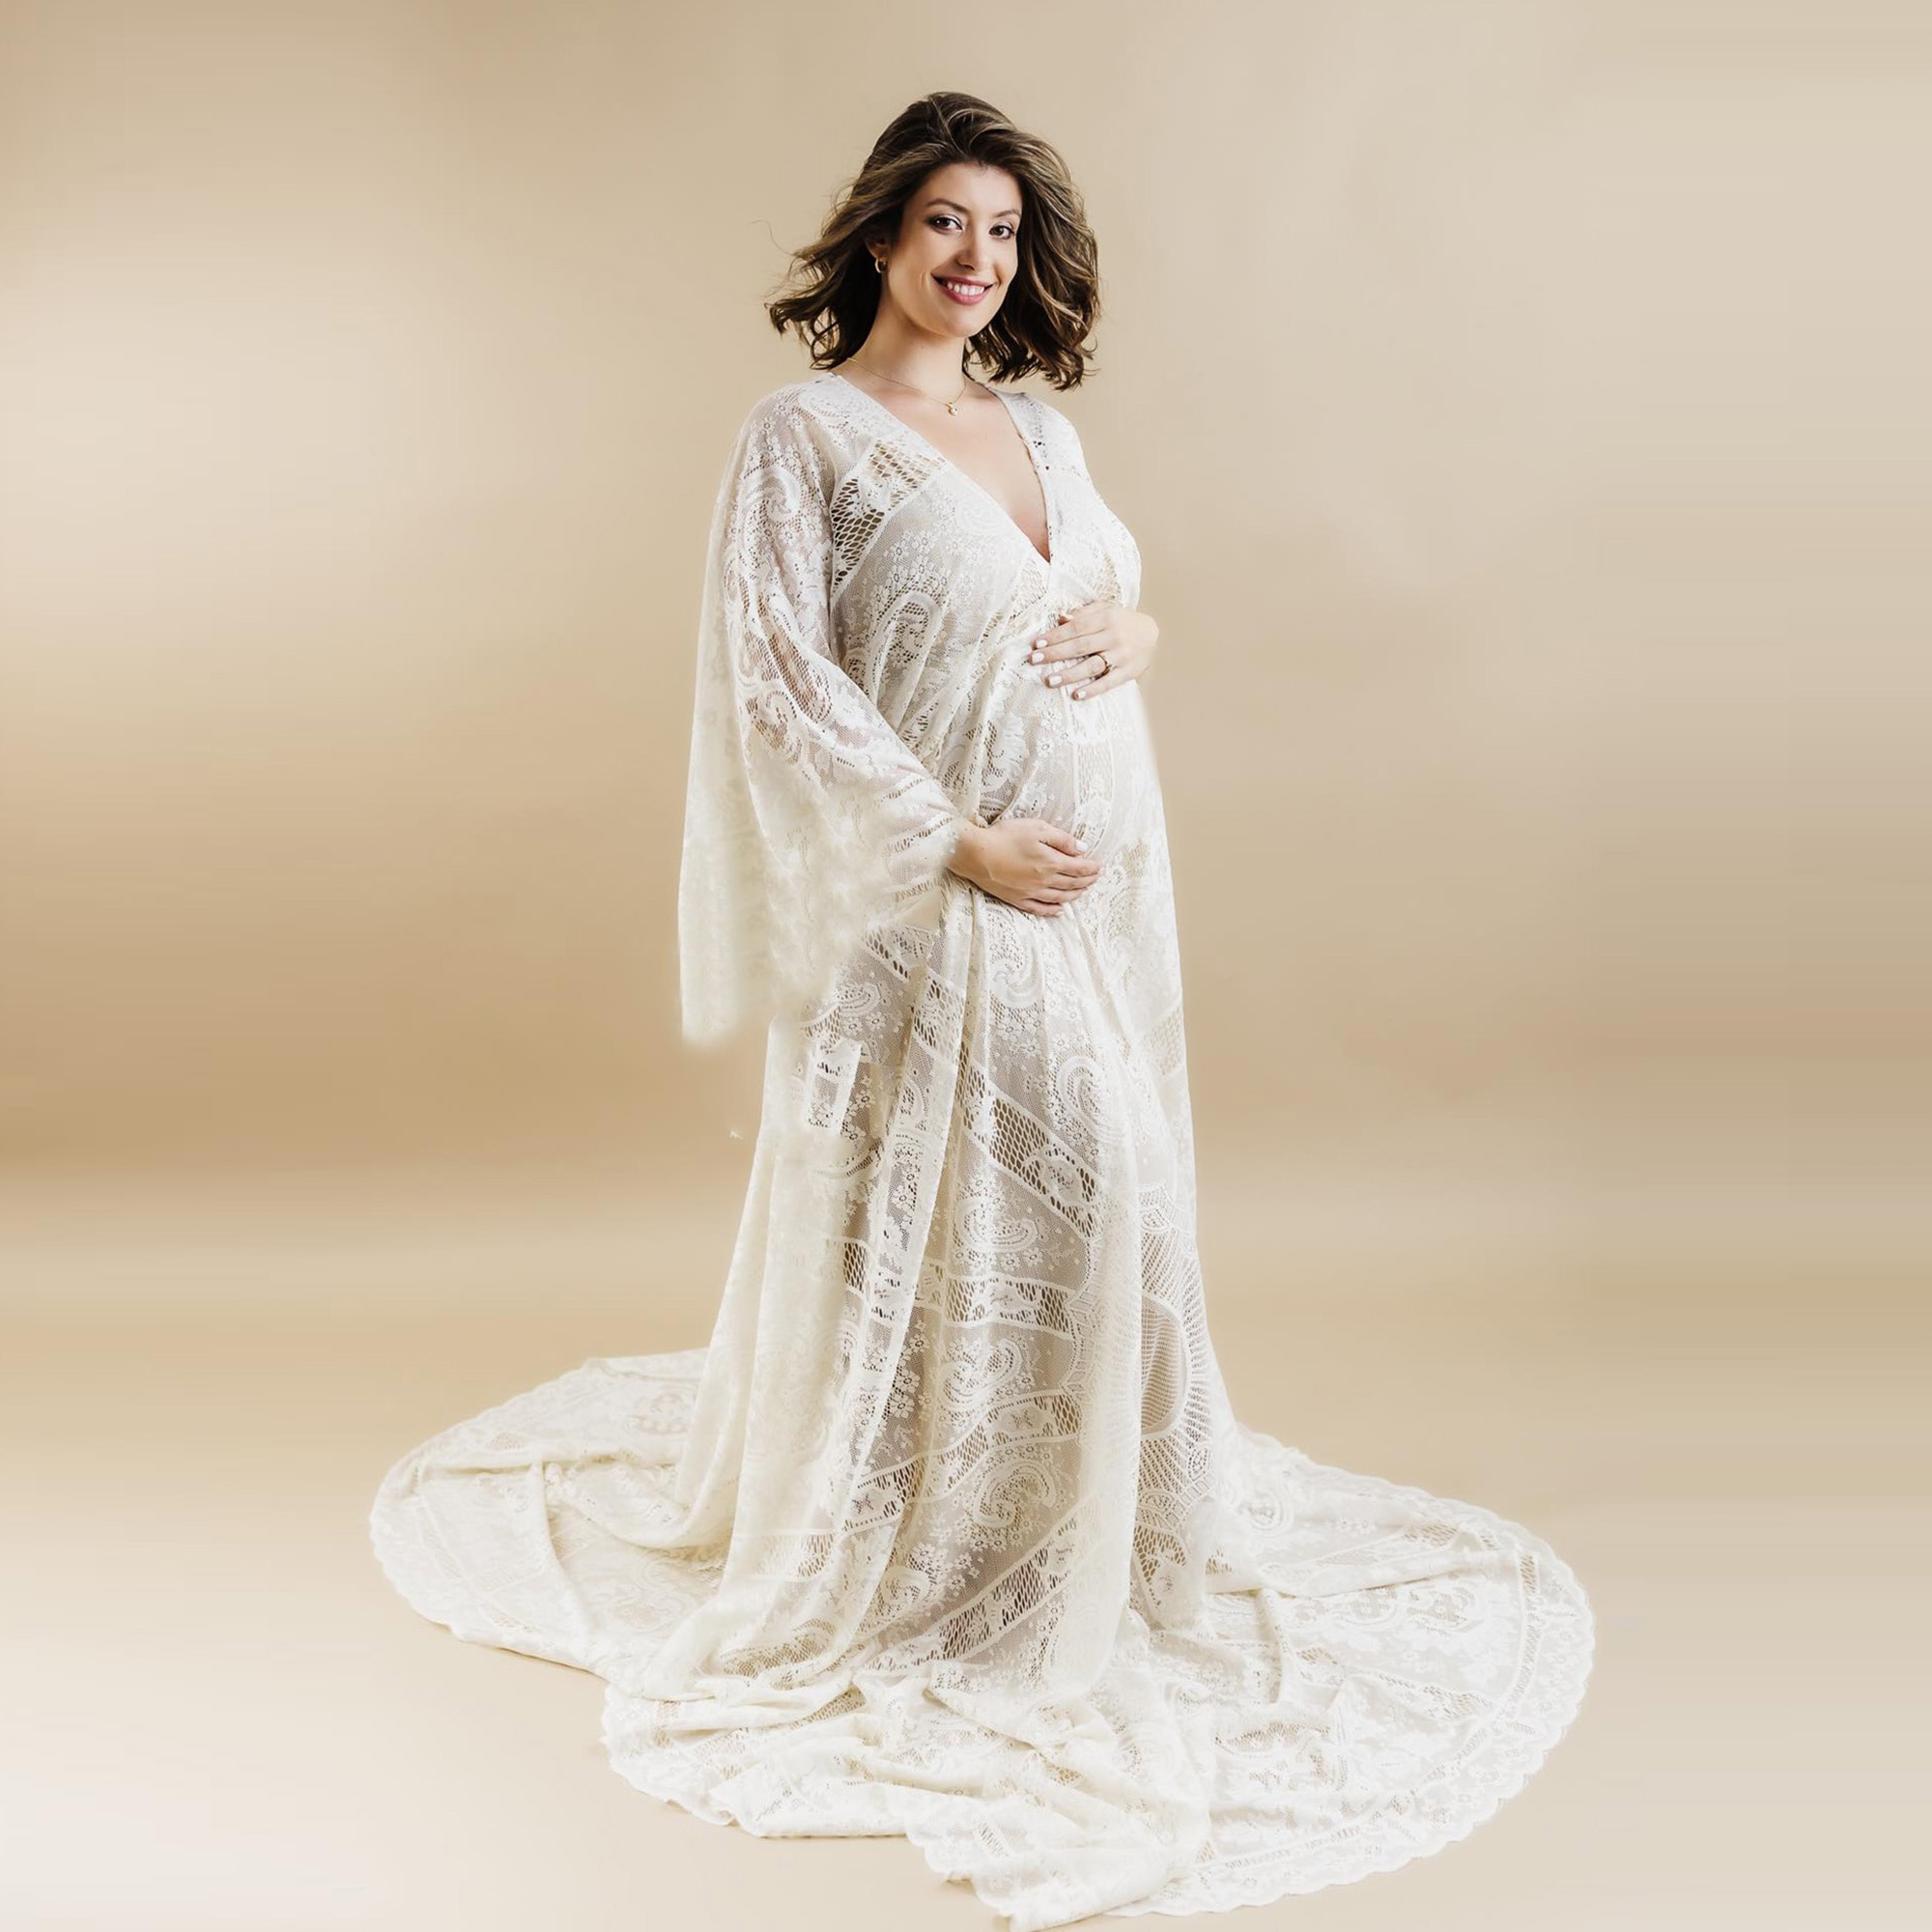 Don&Judy Boho Women Maxi Floral Gown Dress Loose Embroidery Lace Long Beach Dress Maternity Photography Props 2021